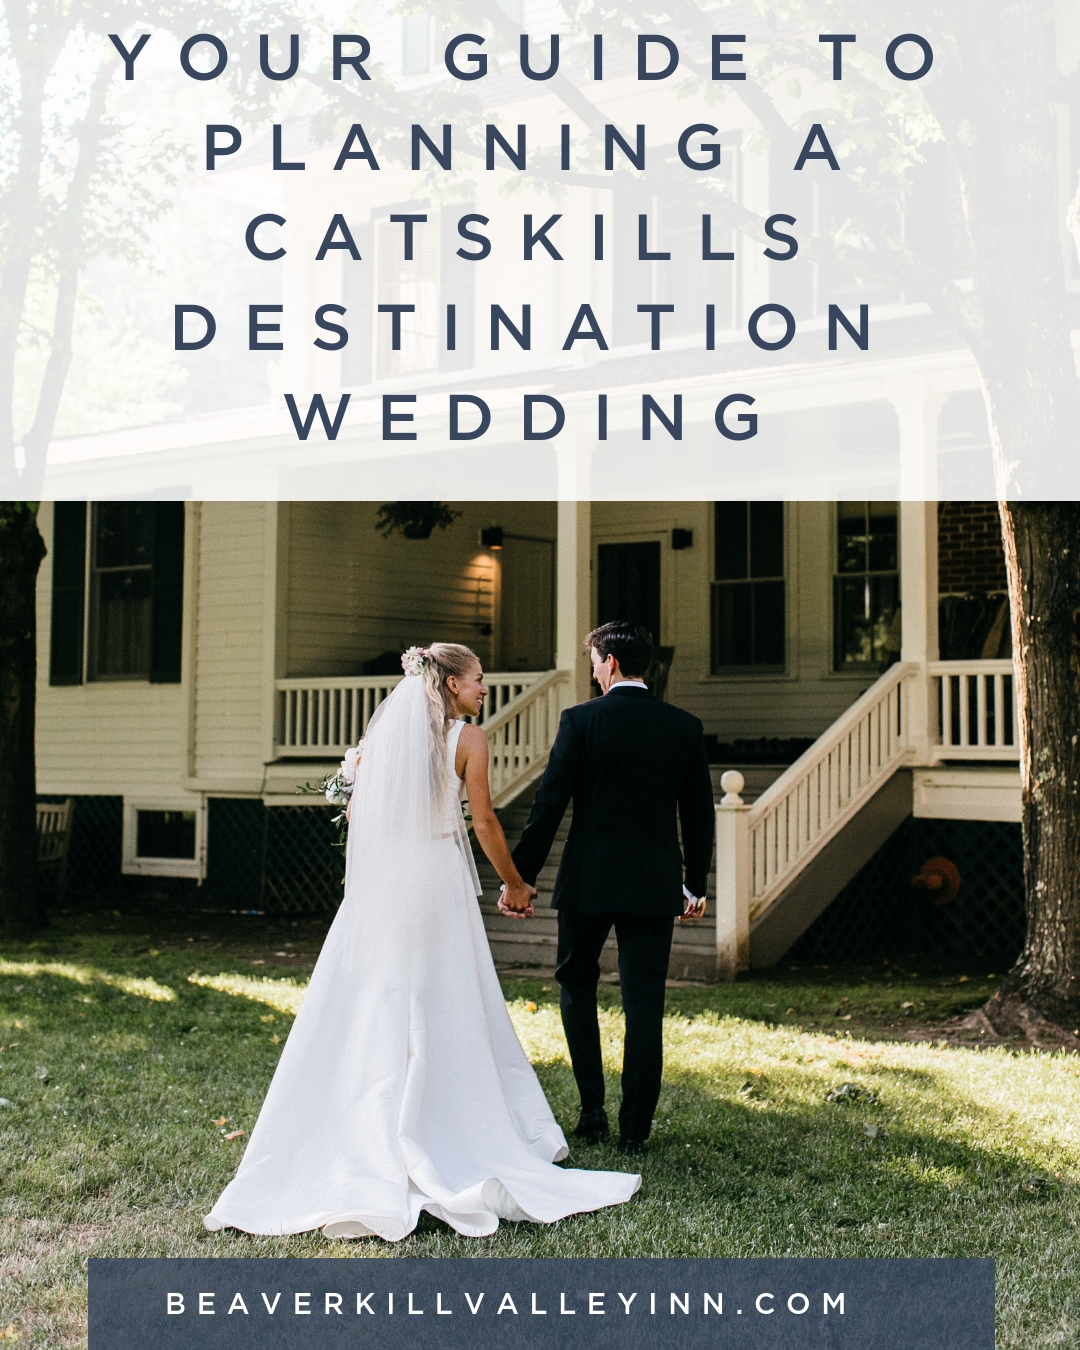 Your Guide to Planning a Catskills Destination Wedding